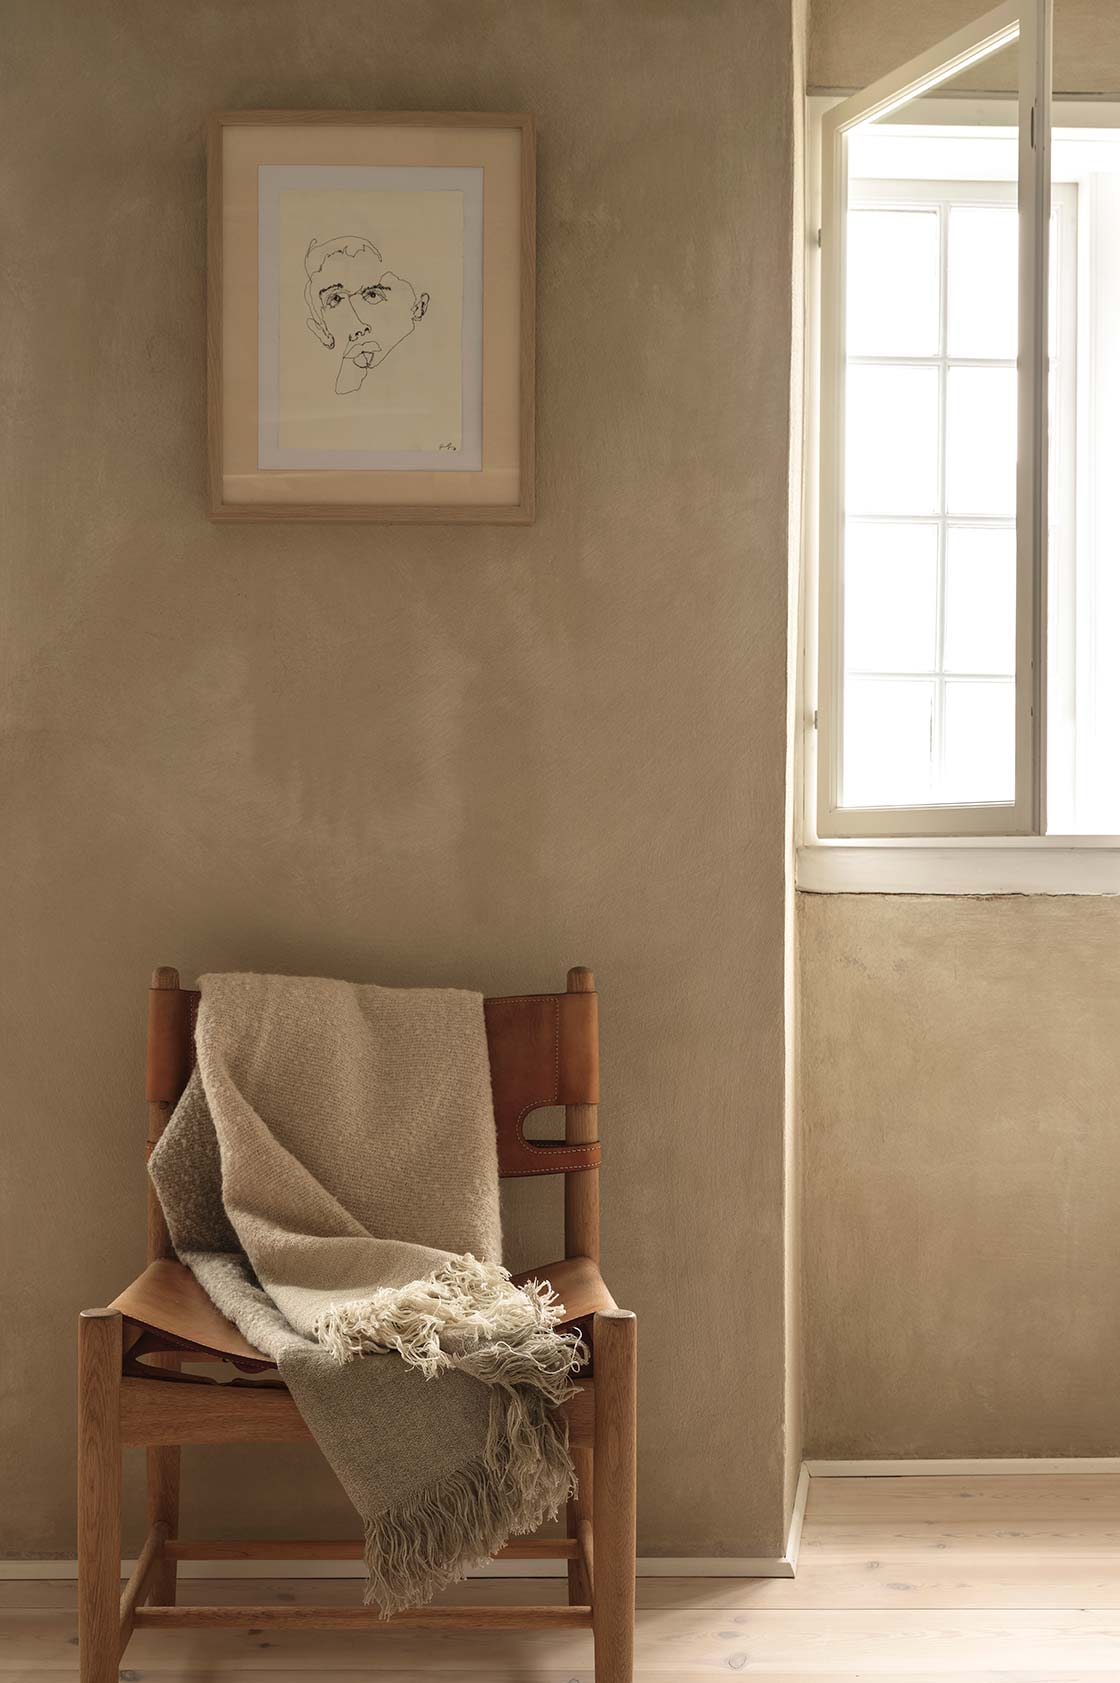 The Nordroom - A Life of Simplicity by Zara Home 10.jpg